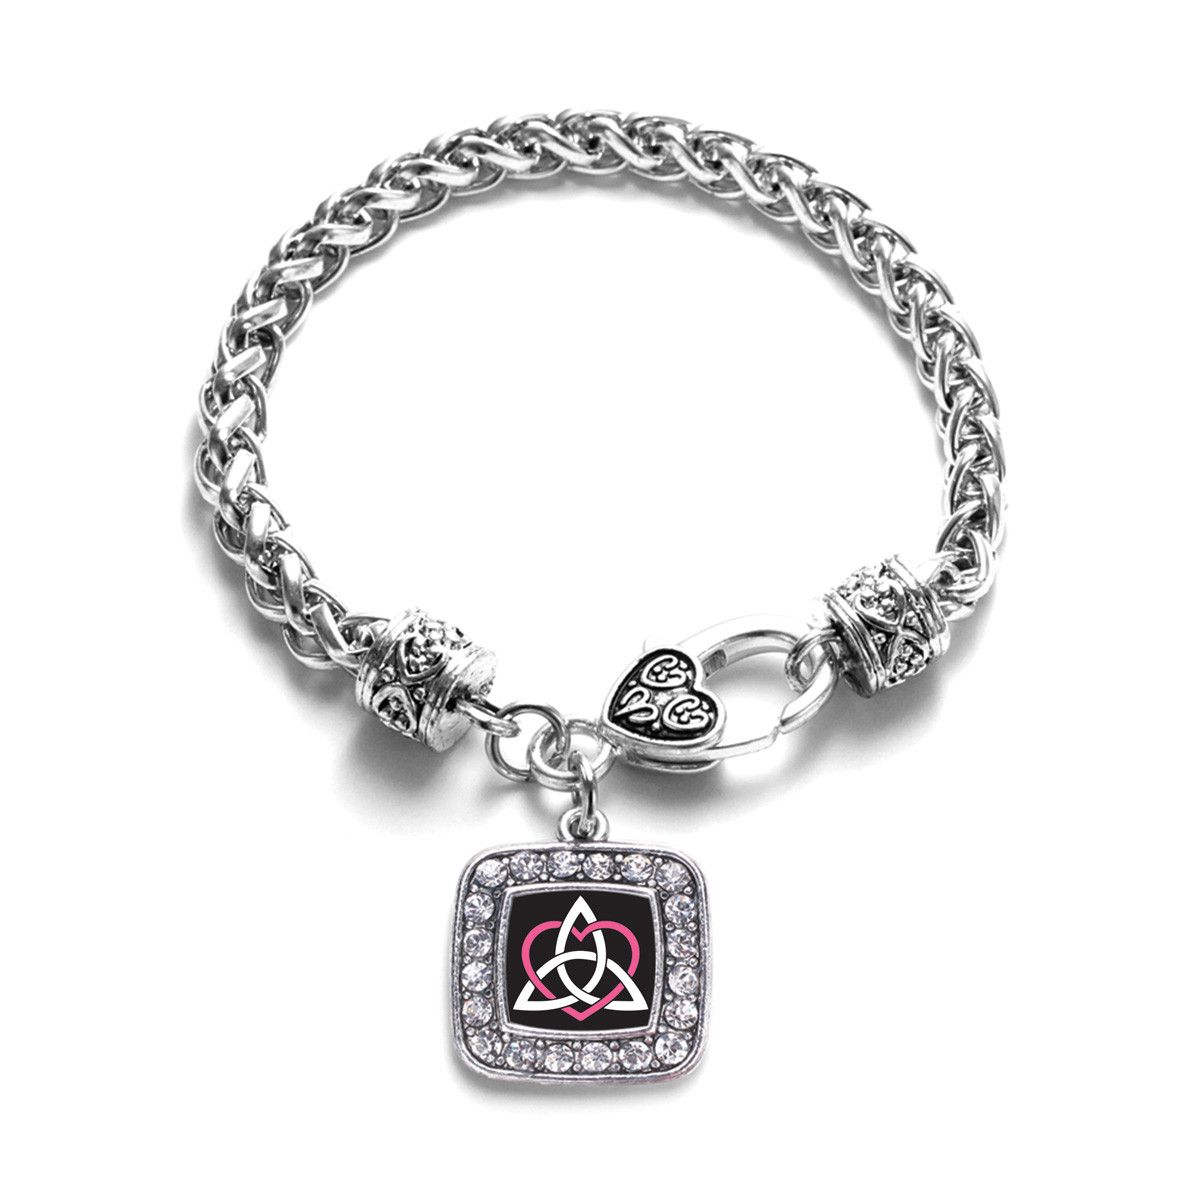 Sister Adjustable Silver Bead Bracelet With Truly Charming Sparkle Collection Gift Box lci5IS